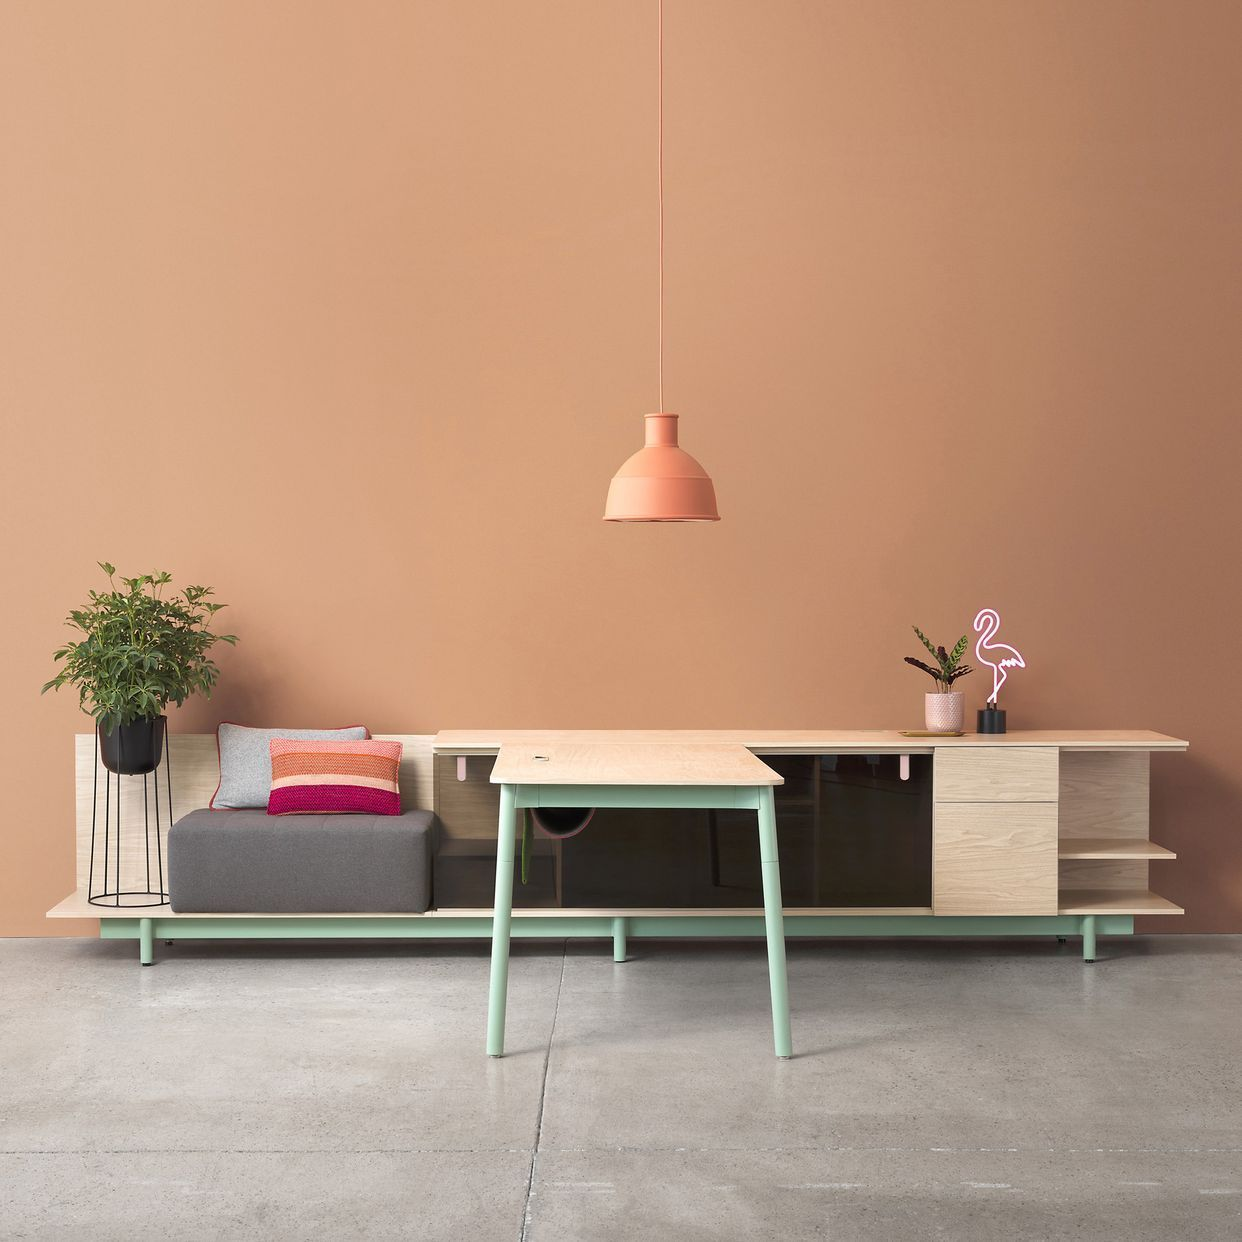 Farmhouse Office Furniture The Best Contemporary And Products From Neocon 2018 Dezeen Farmhouseoffice